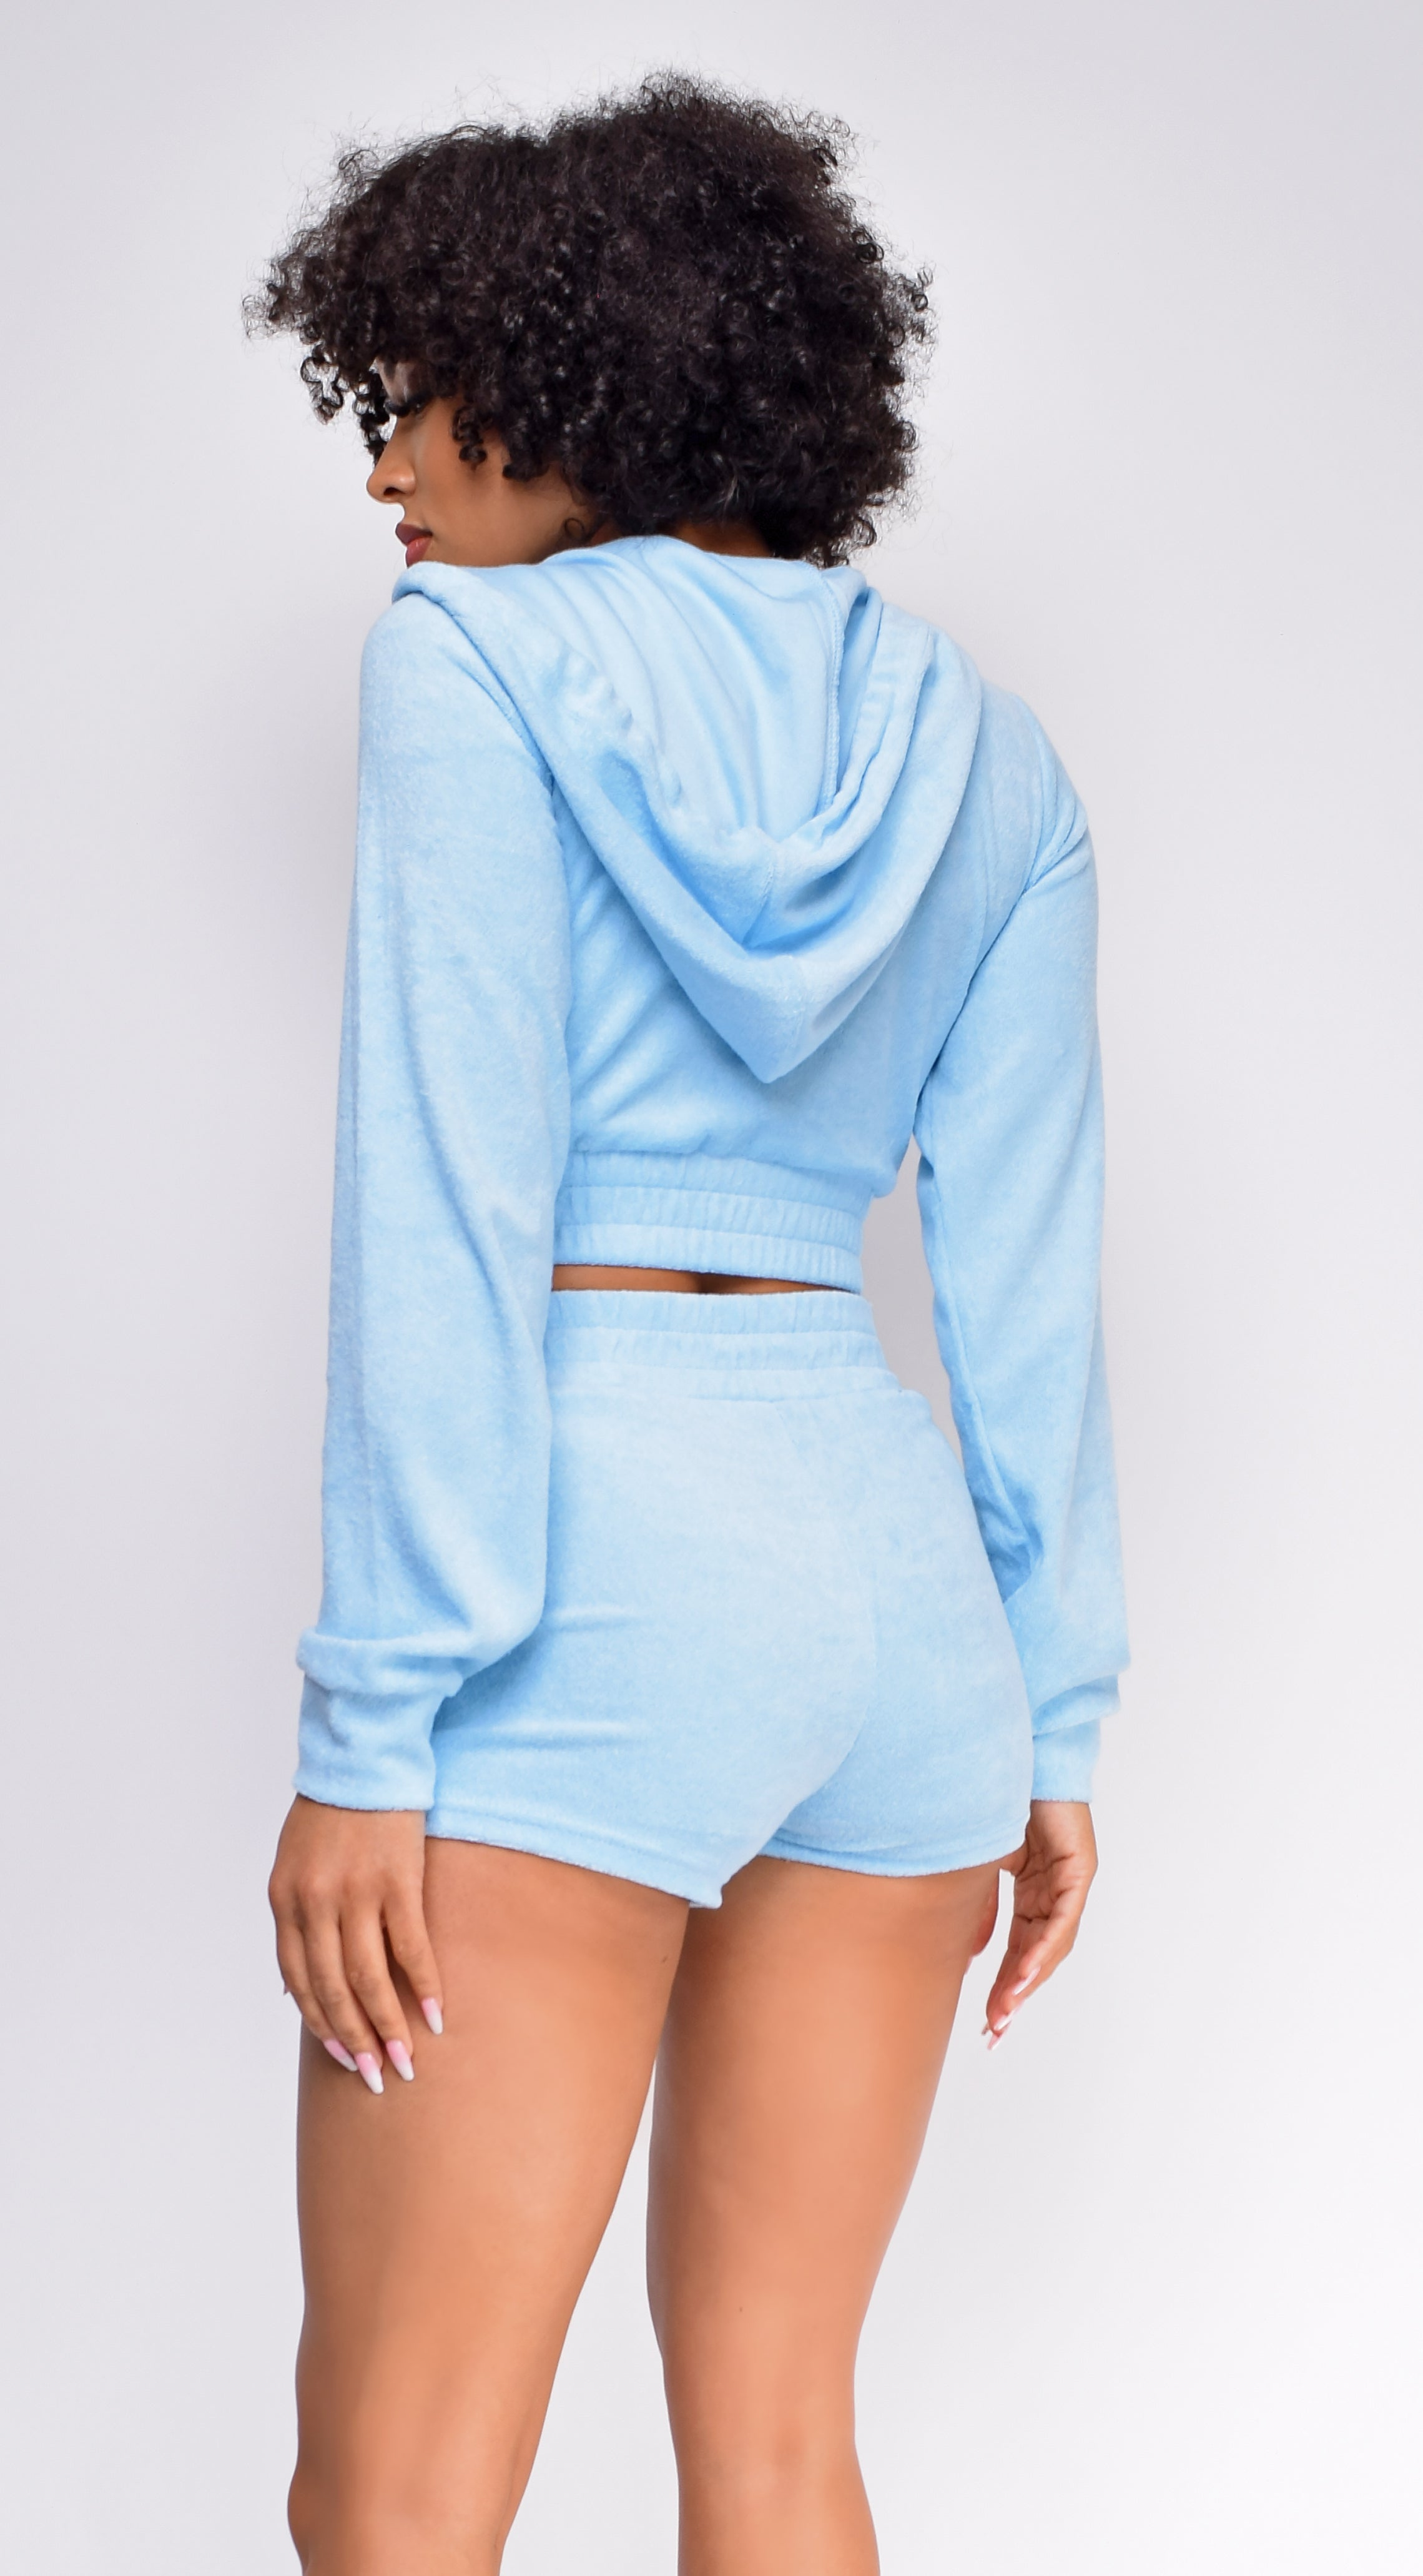 Just The Two Of Us Sky Blue French Terry Crop Hoodie Shorts Set